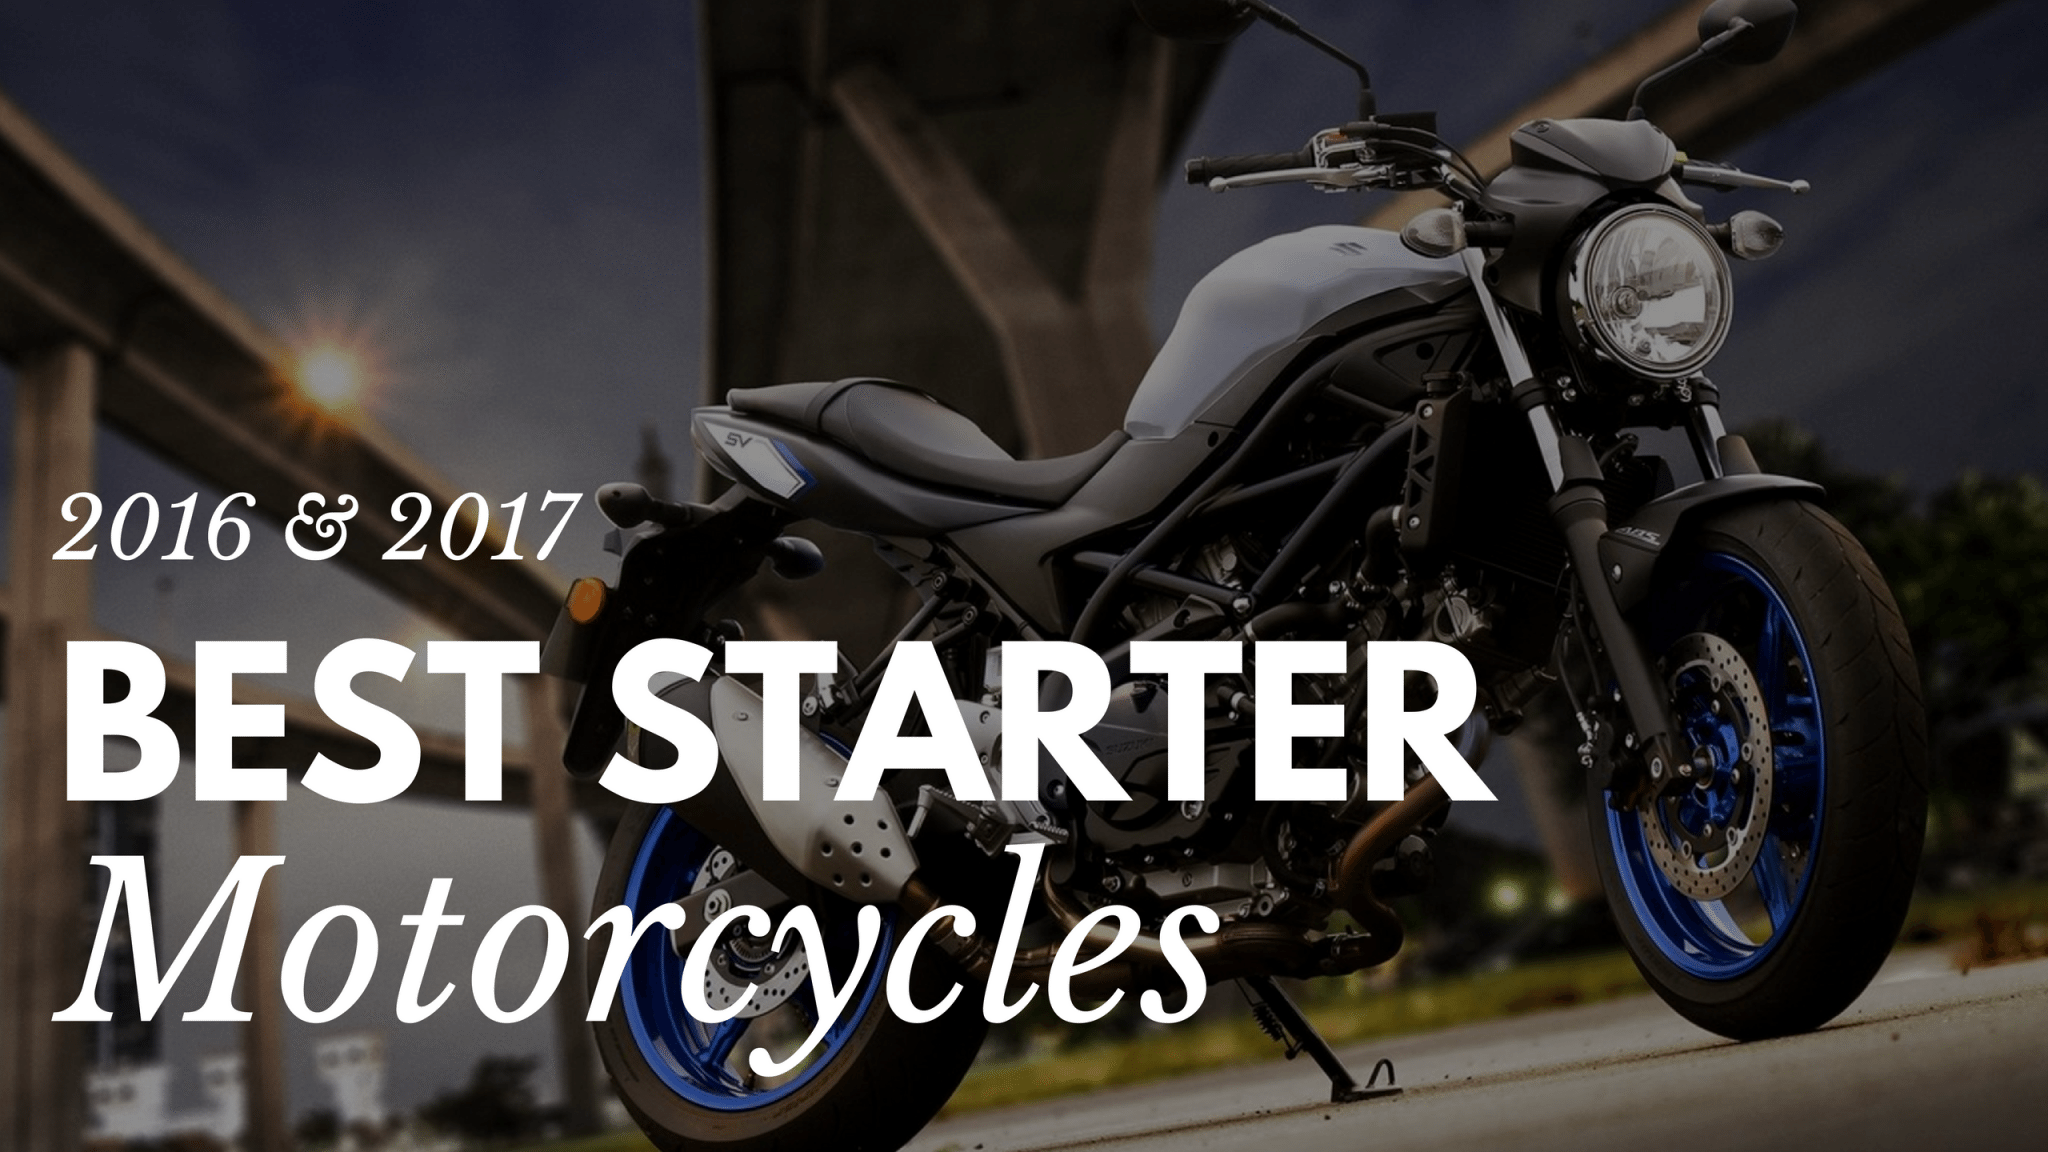 2017 best starter motorcycles